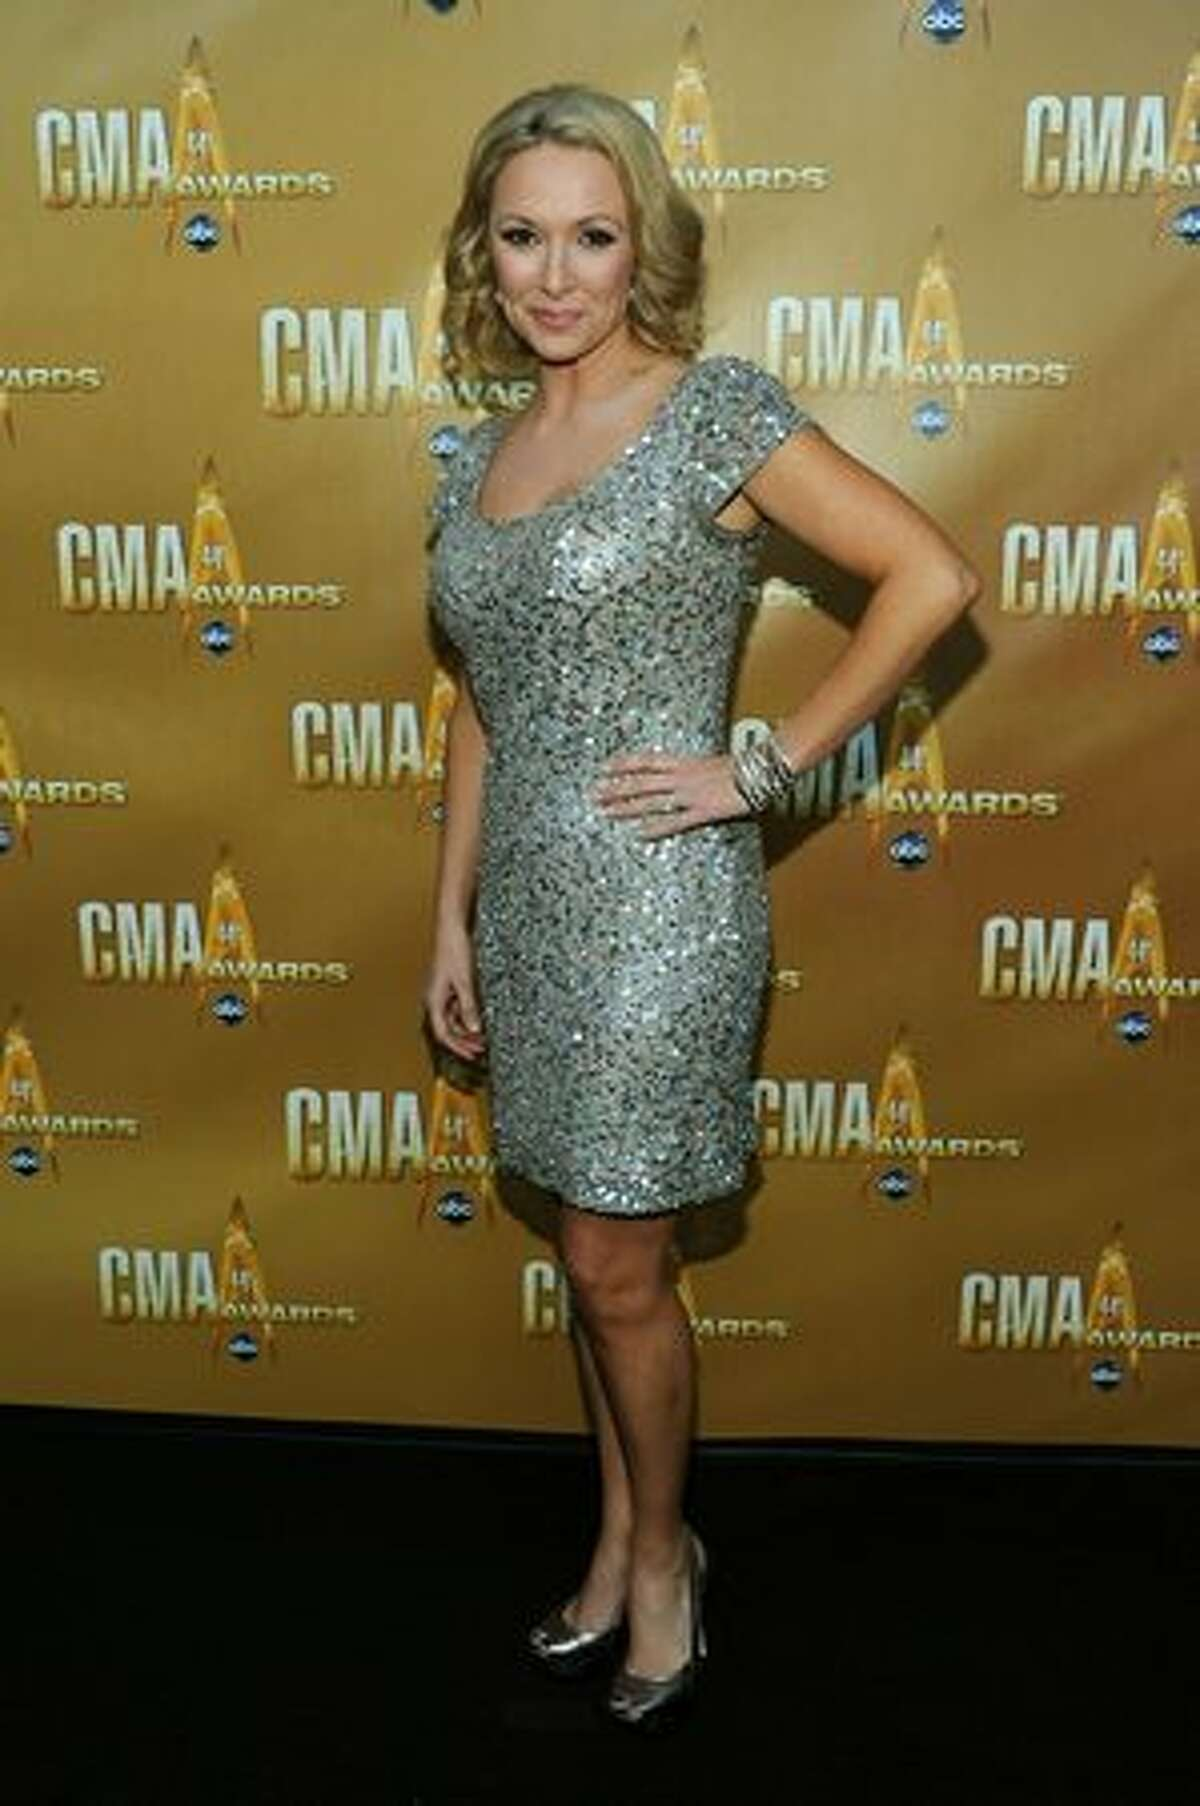 Katie Cook attends the 44th Annual CMA Awards at the Bridgestone Arena on Wednesday in Nashville, Tennessee.